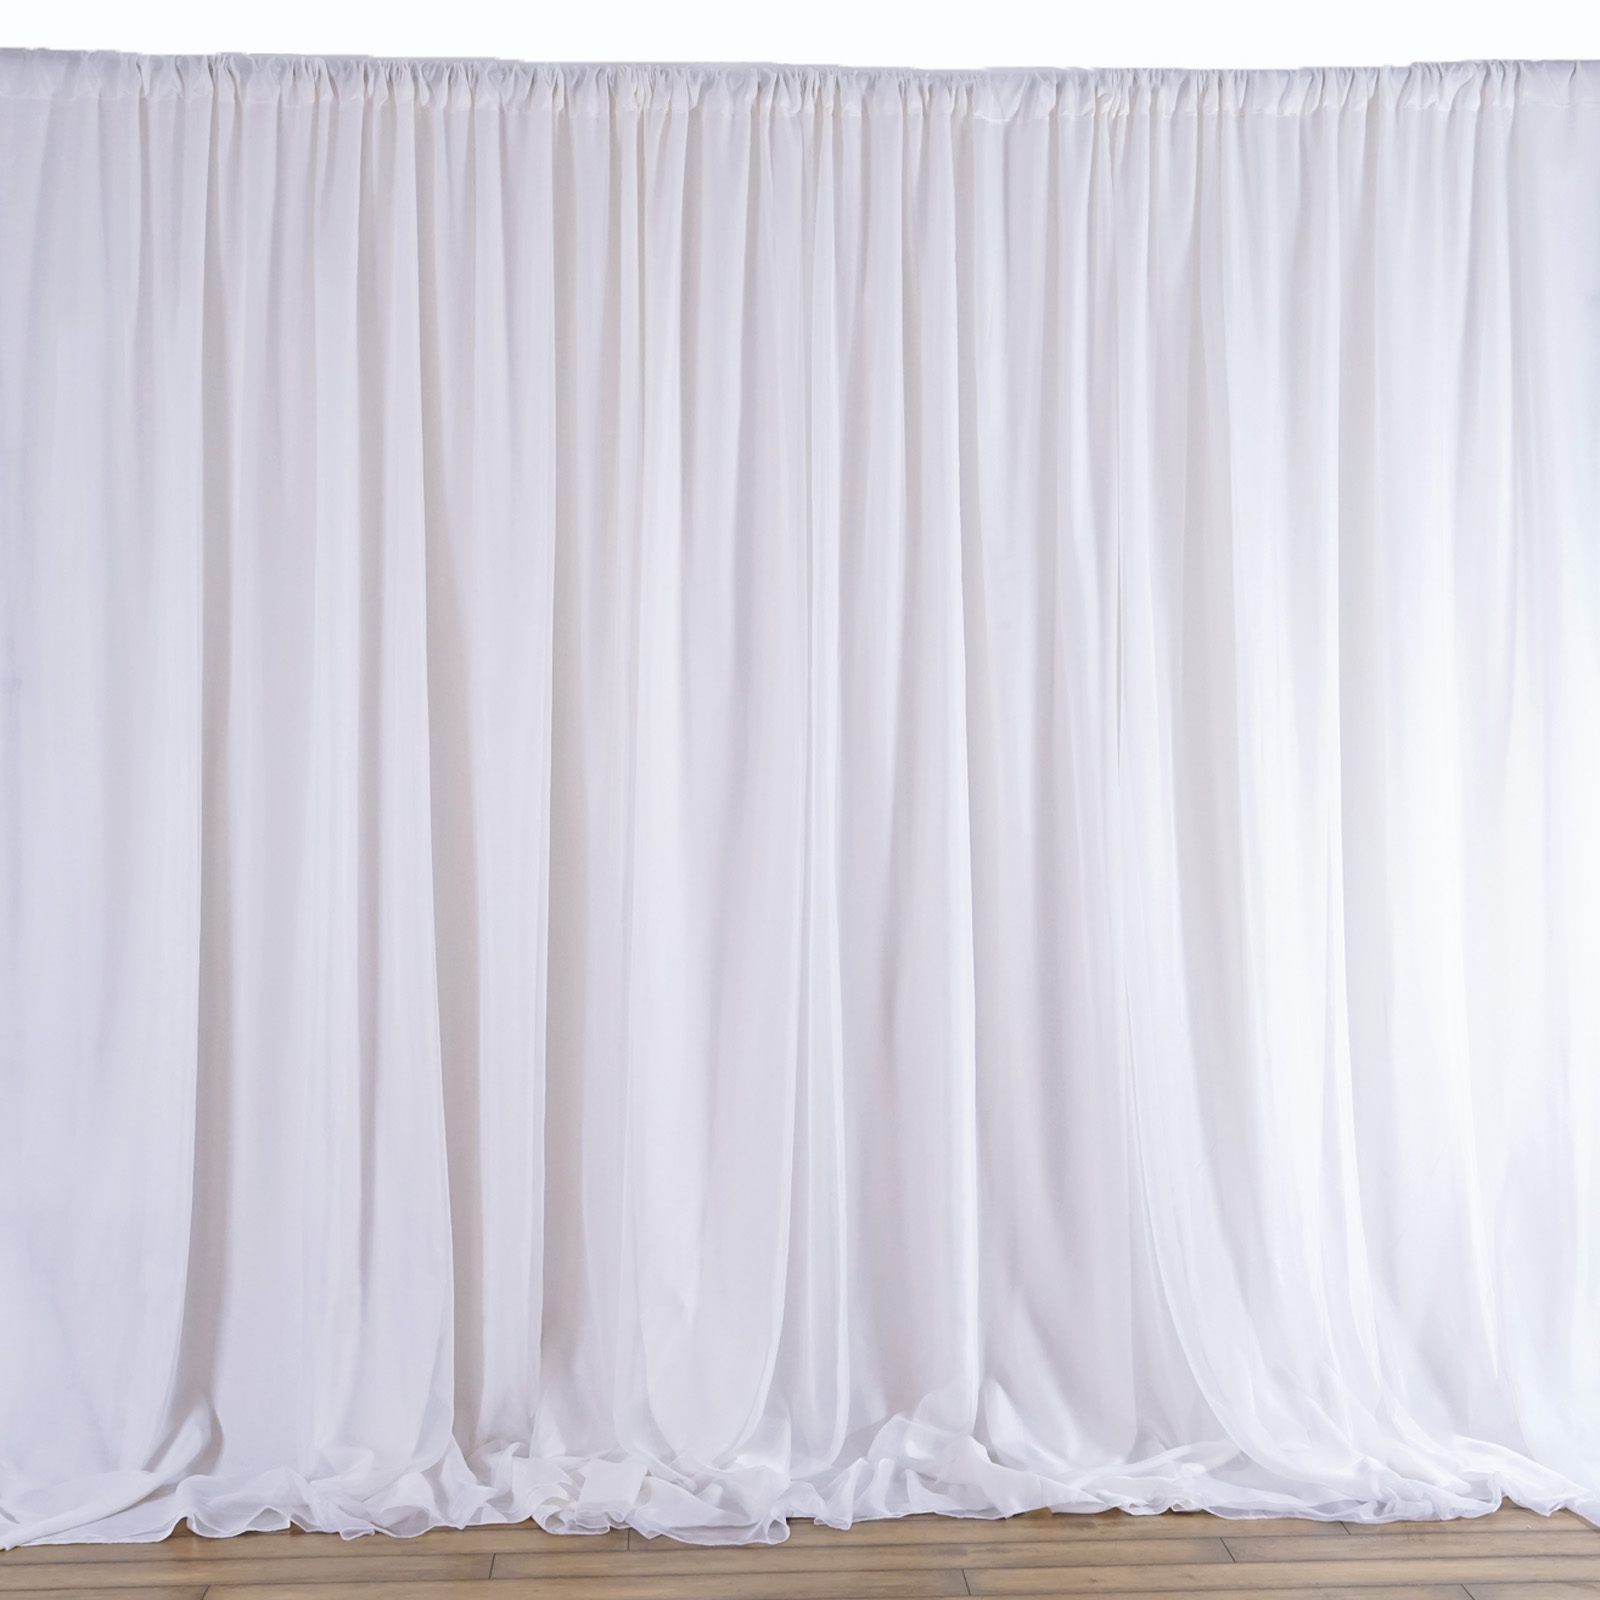 6 M X 3 M White Fabric Backdrop Wedding Party Photobooth Curtain Decorations Ebay